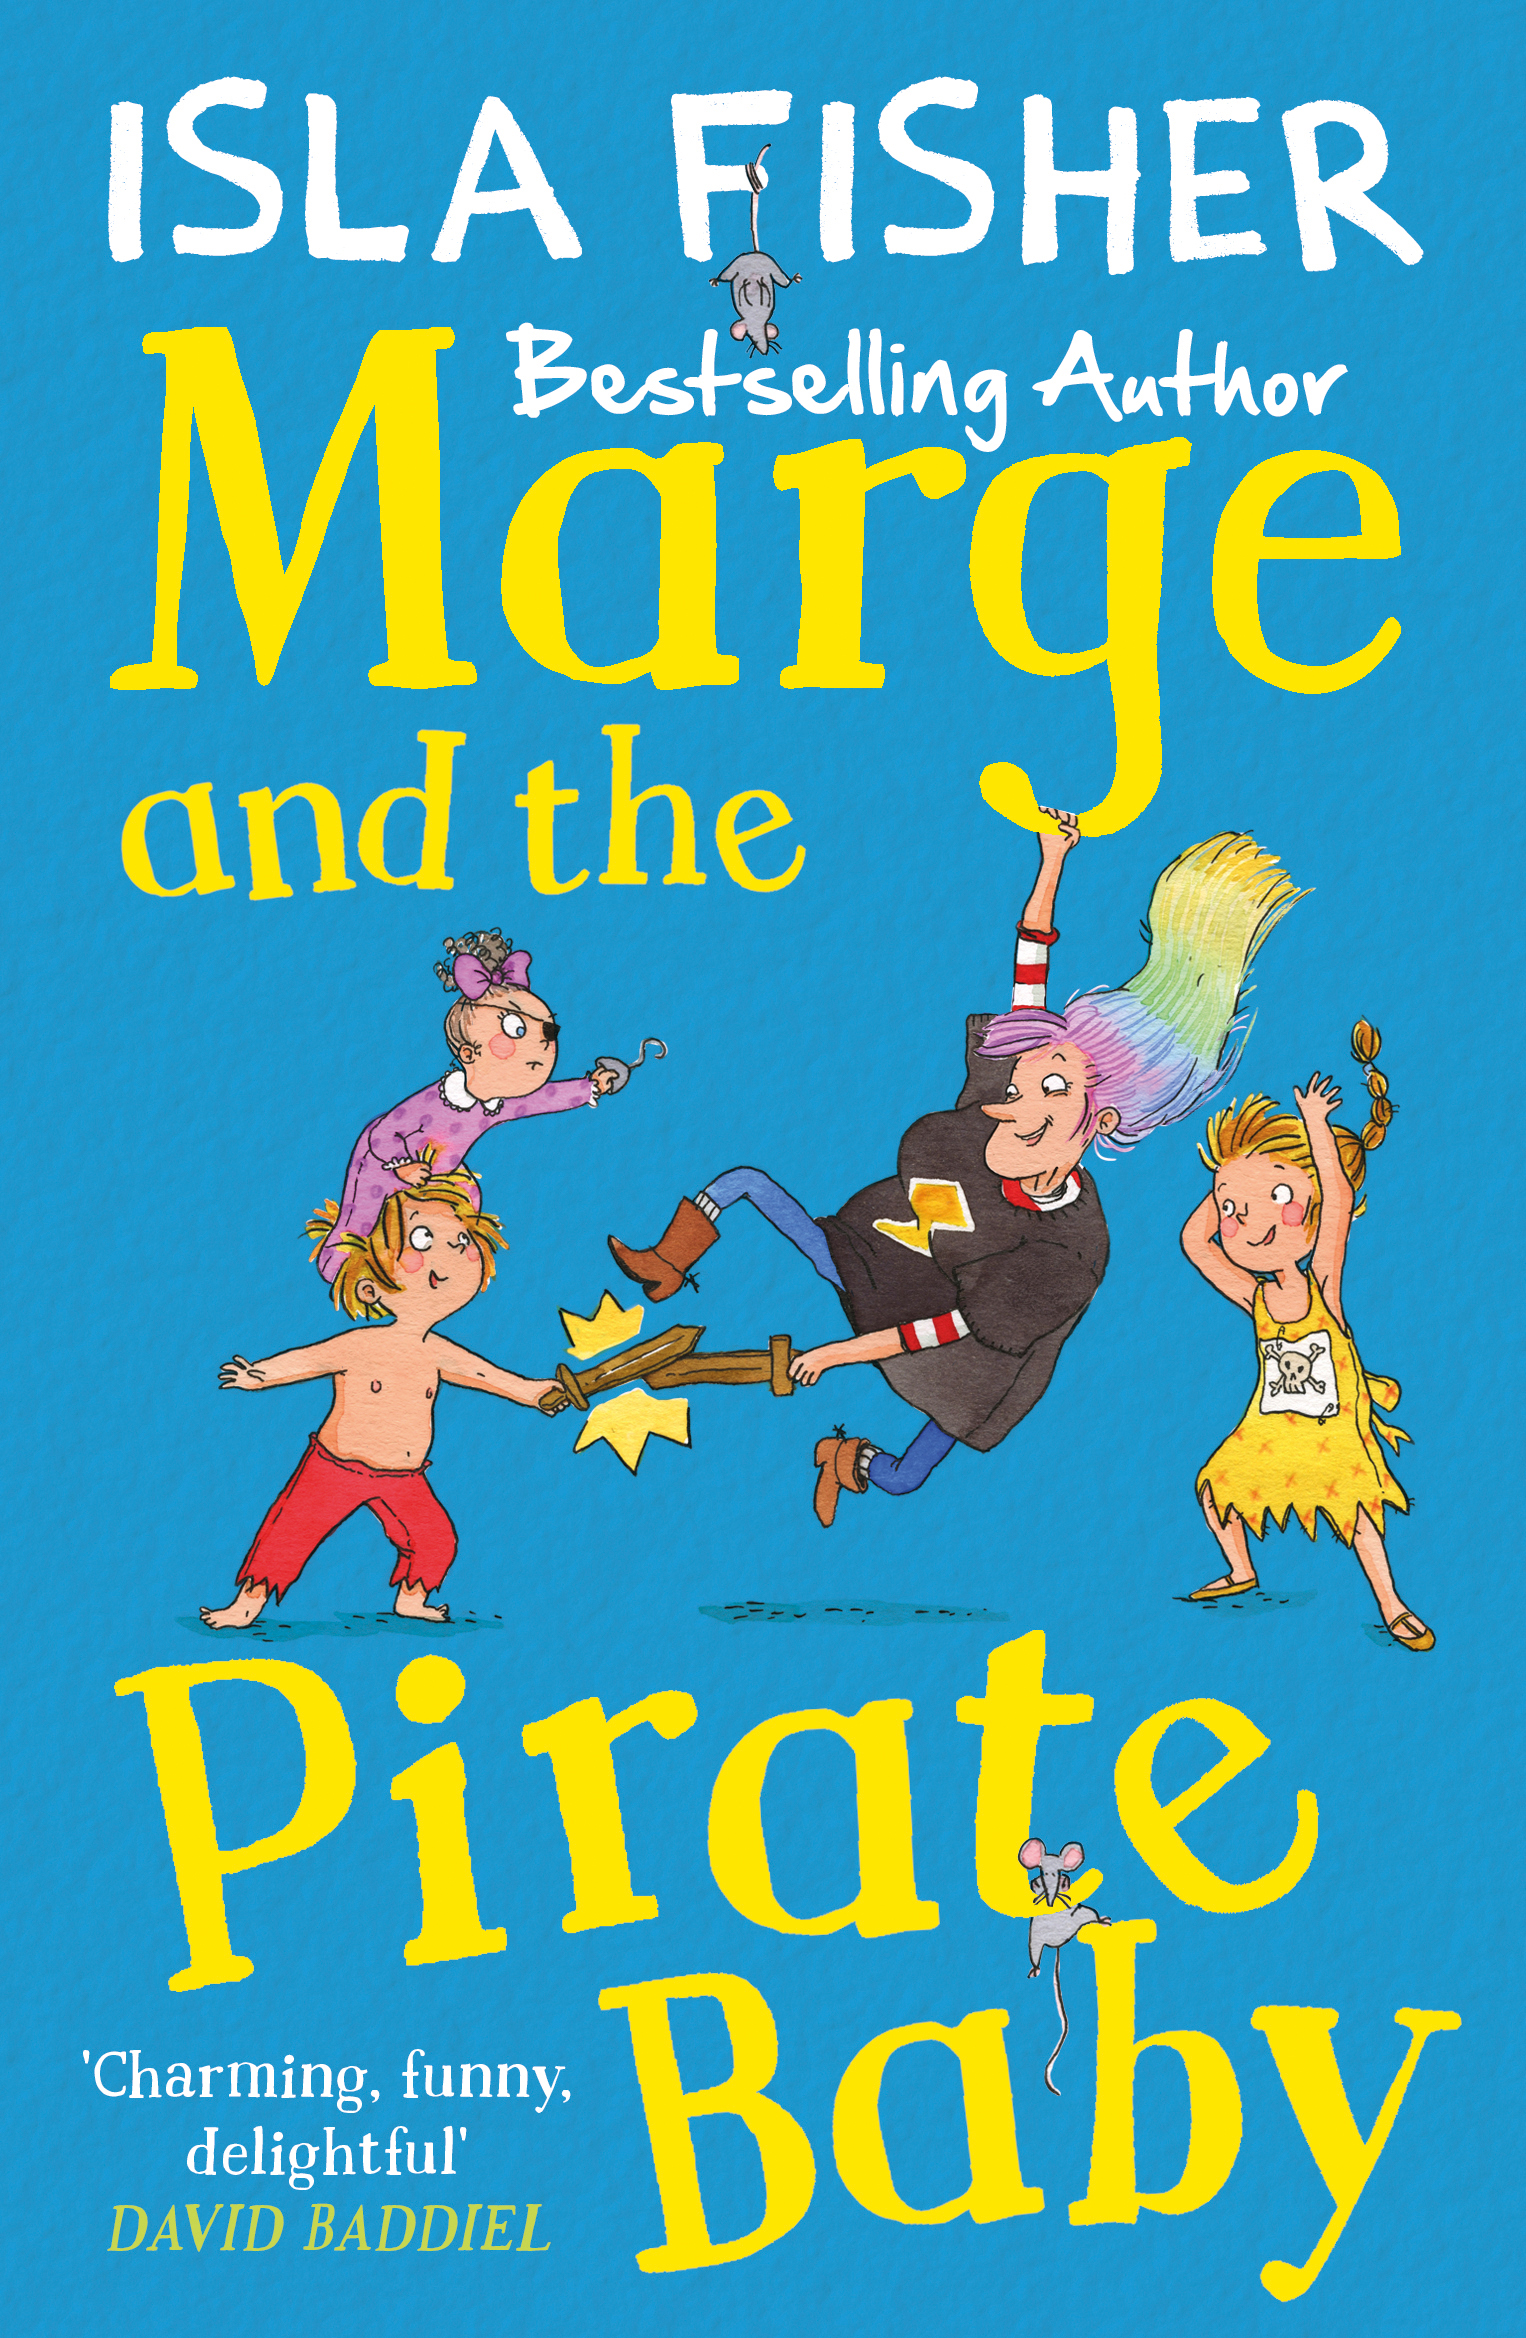 Marge and the Pirate BabyMarge